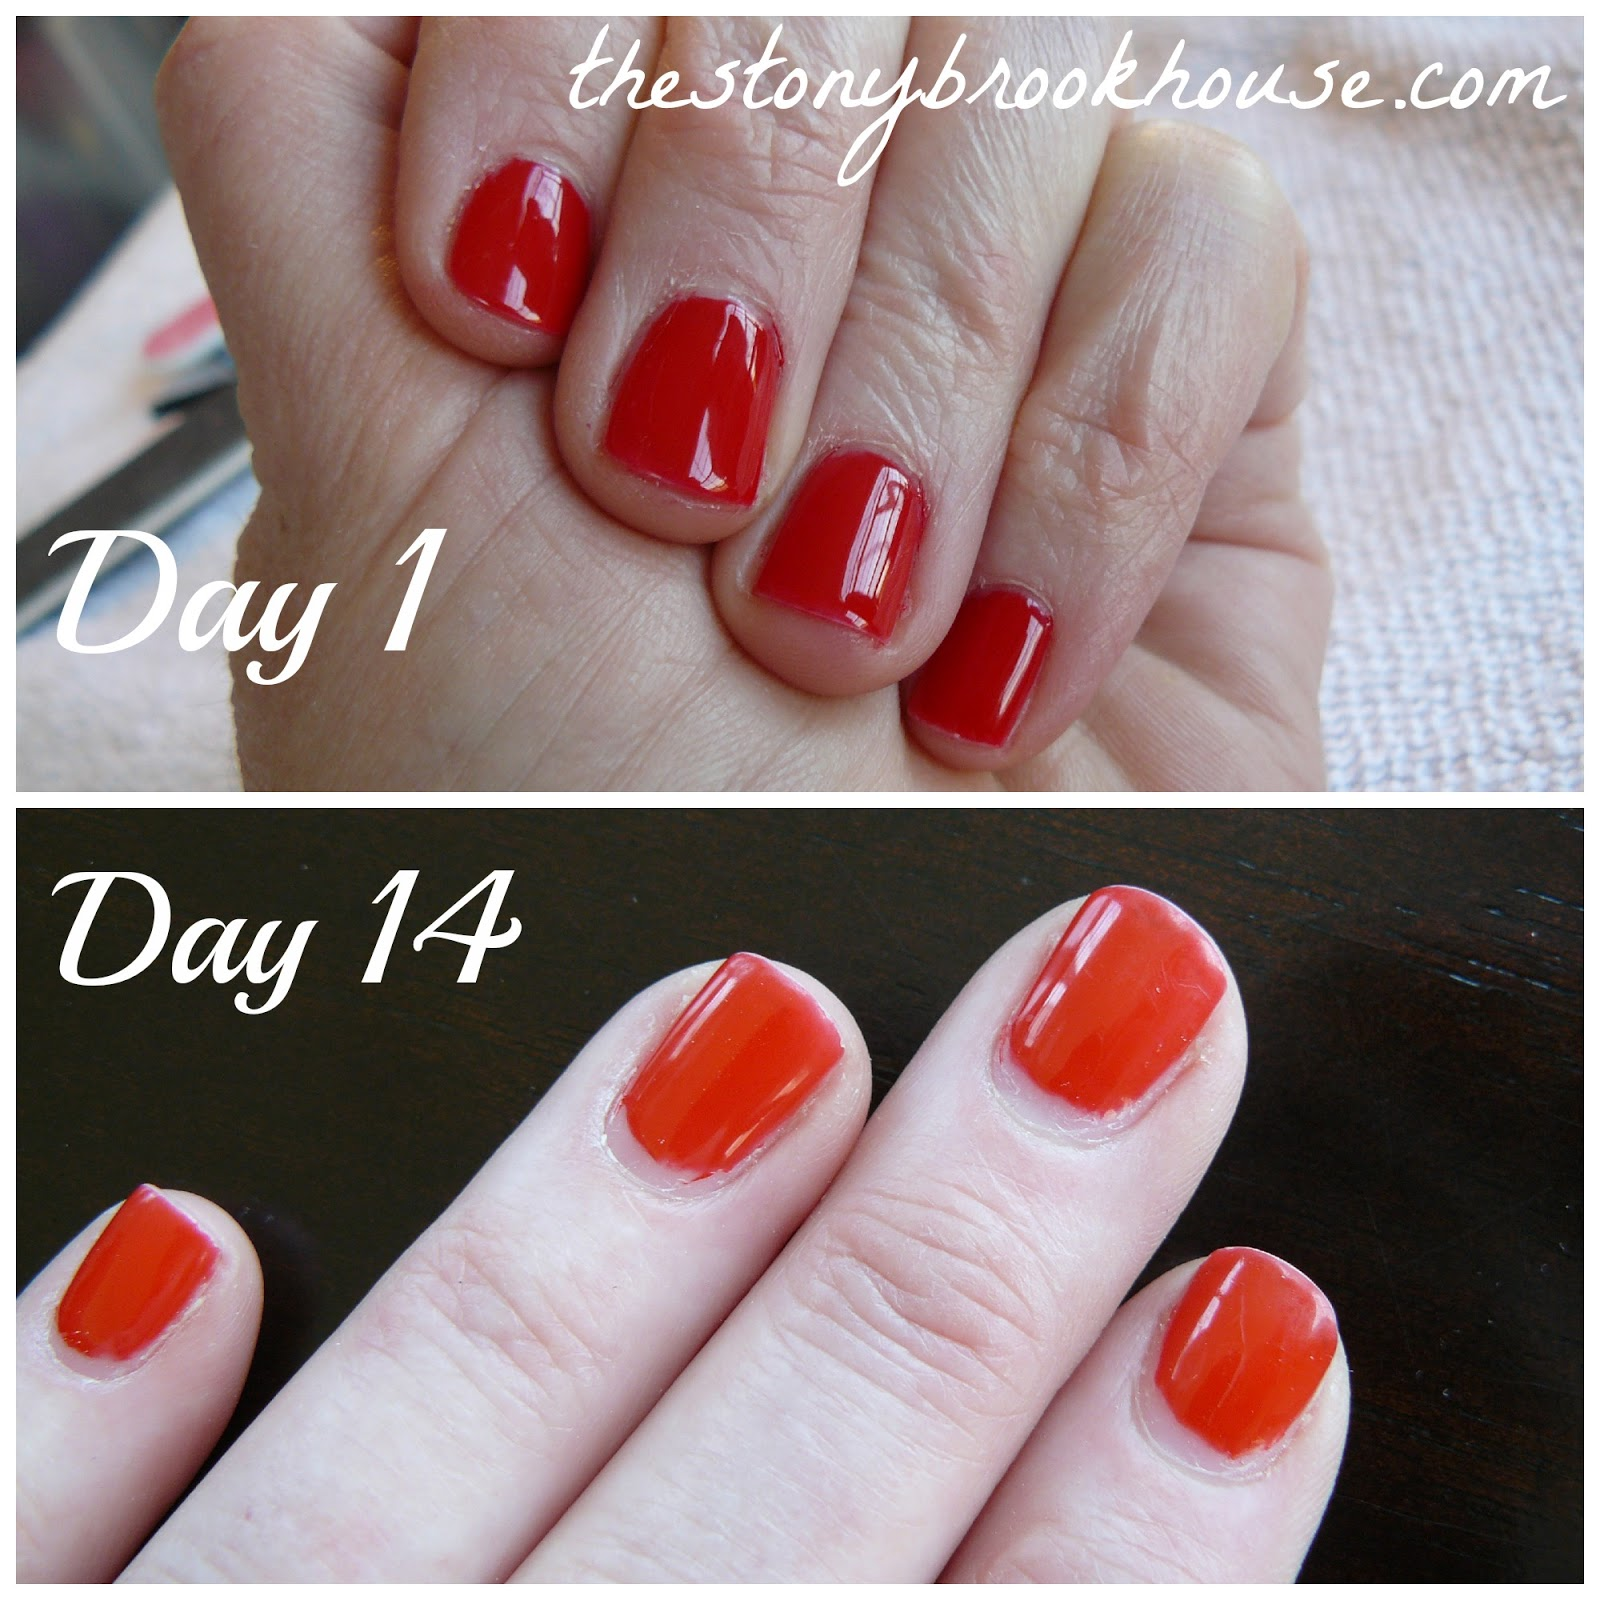 Gel nails 14 day update the stonybrook house gel nails 14 day update solutioingenieria Choice Image